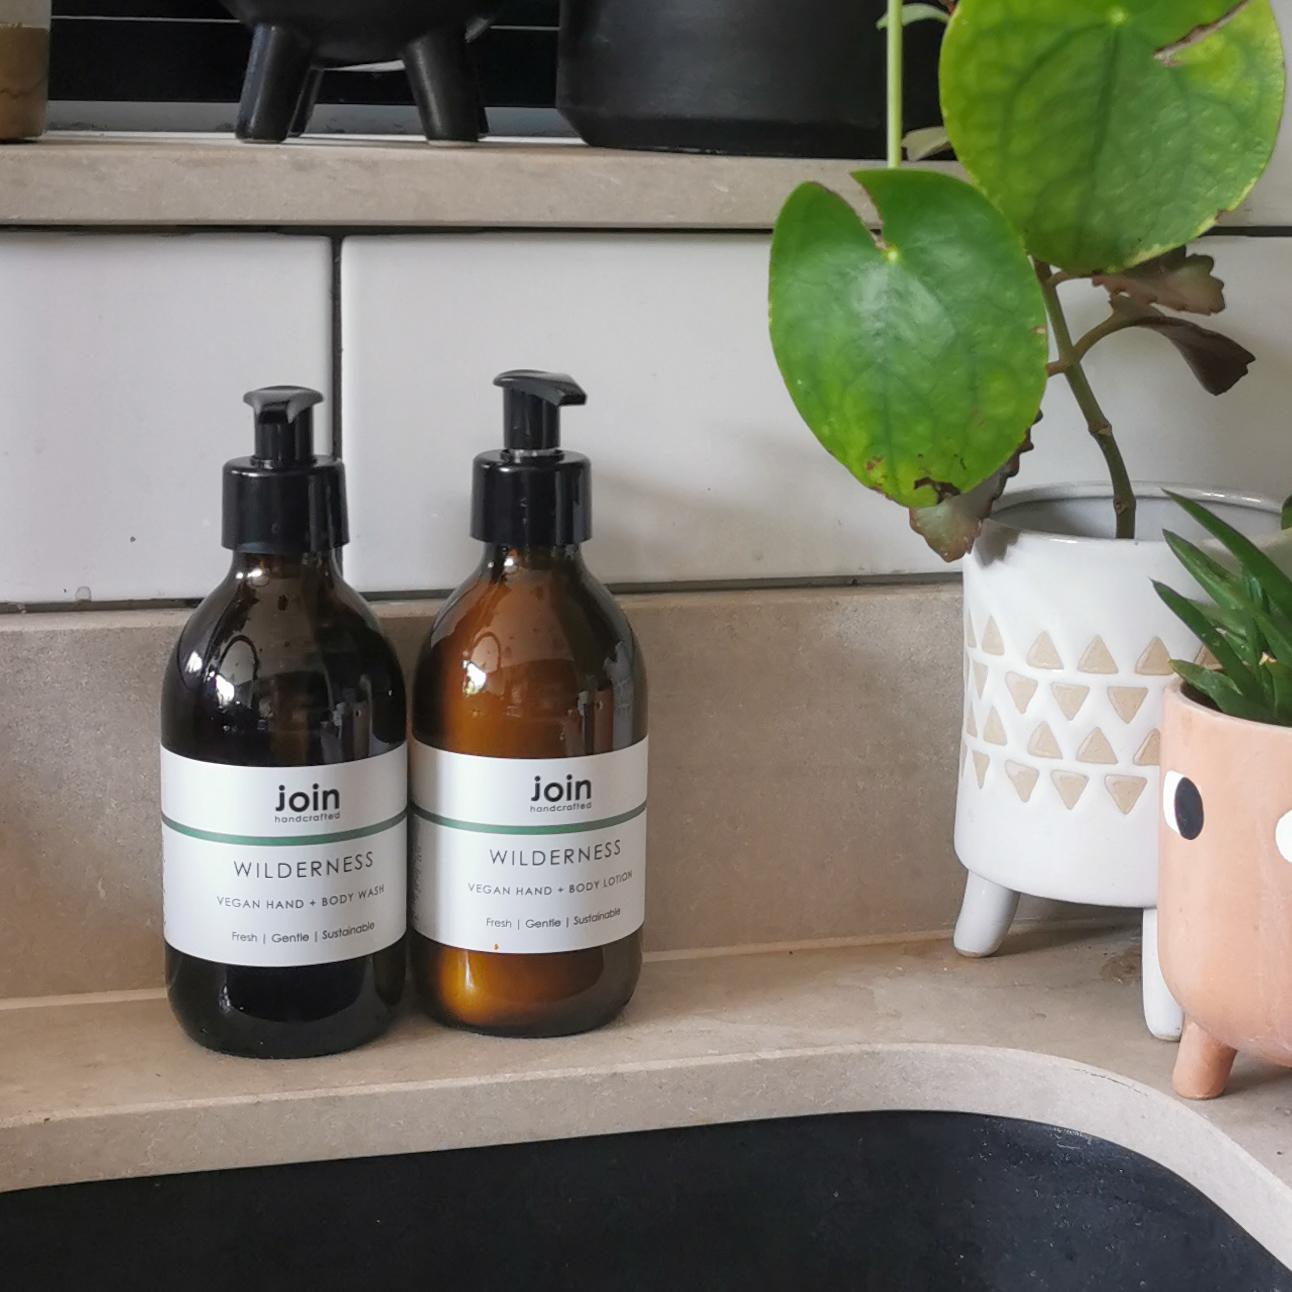 Join Wilderness Vegan Essential Oil Hand & Body Wash at Albert & Moo